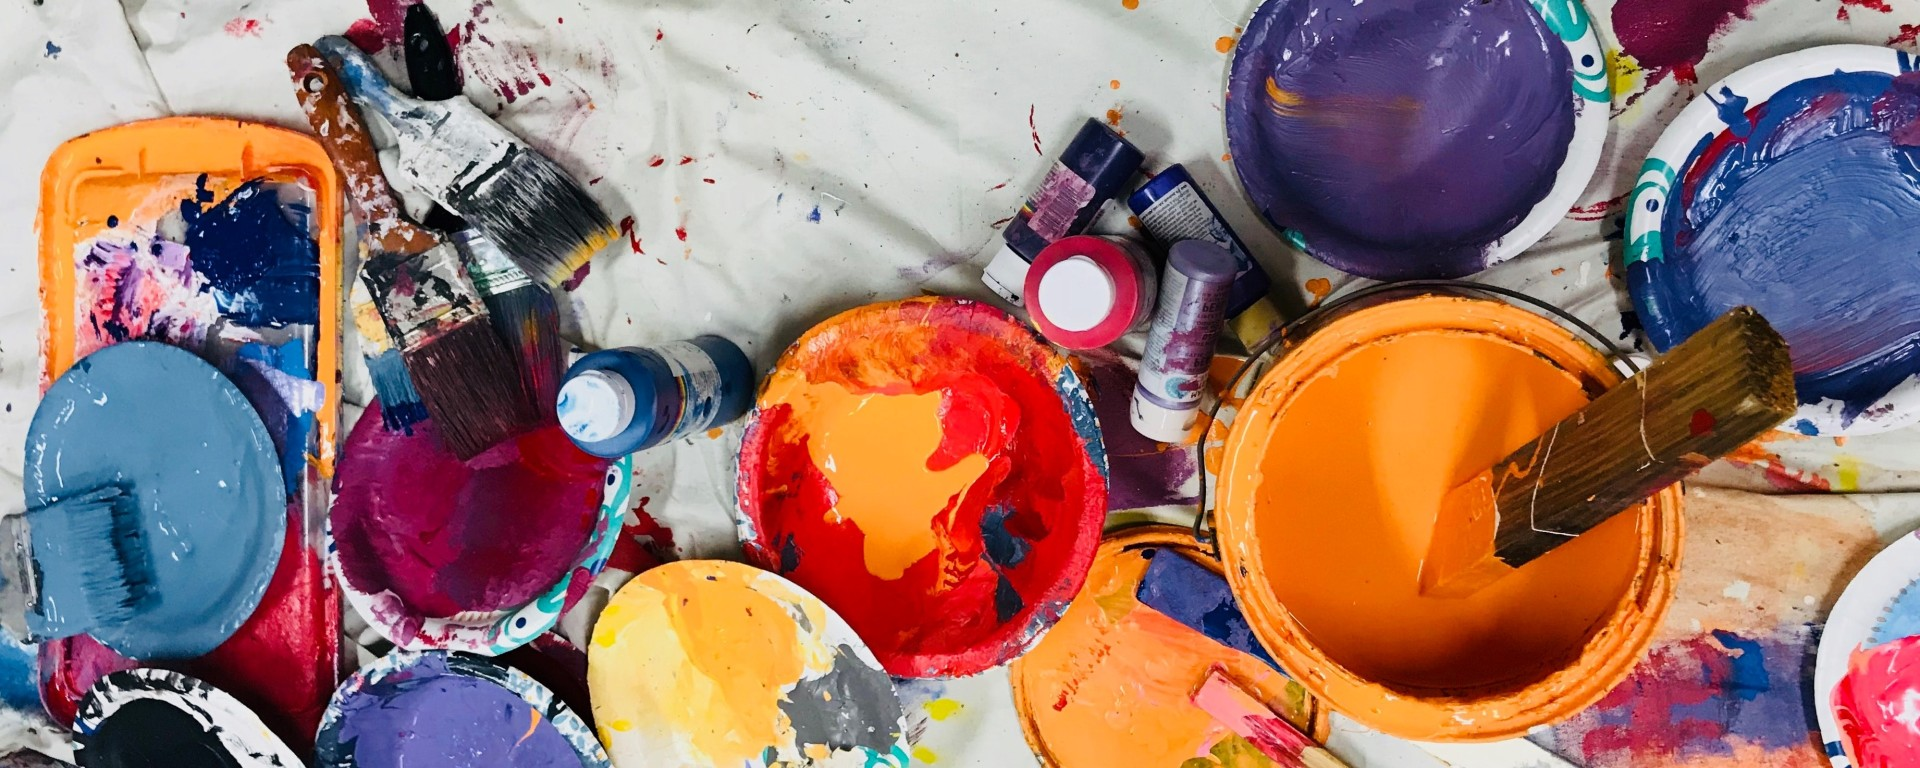 paint cans on paint cloth